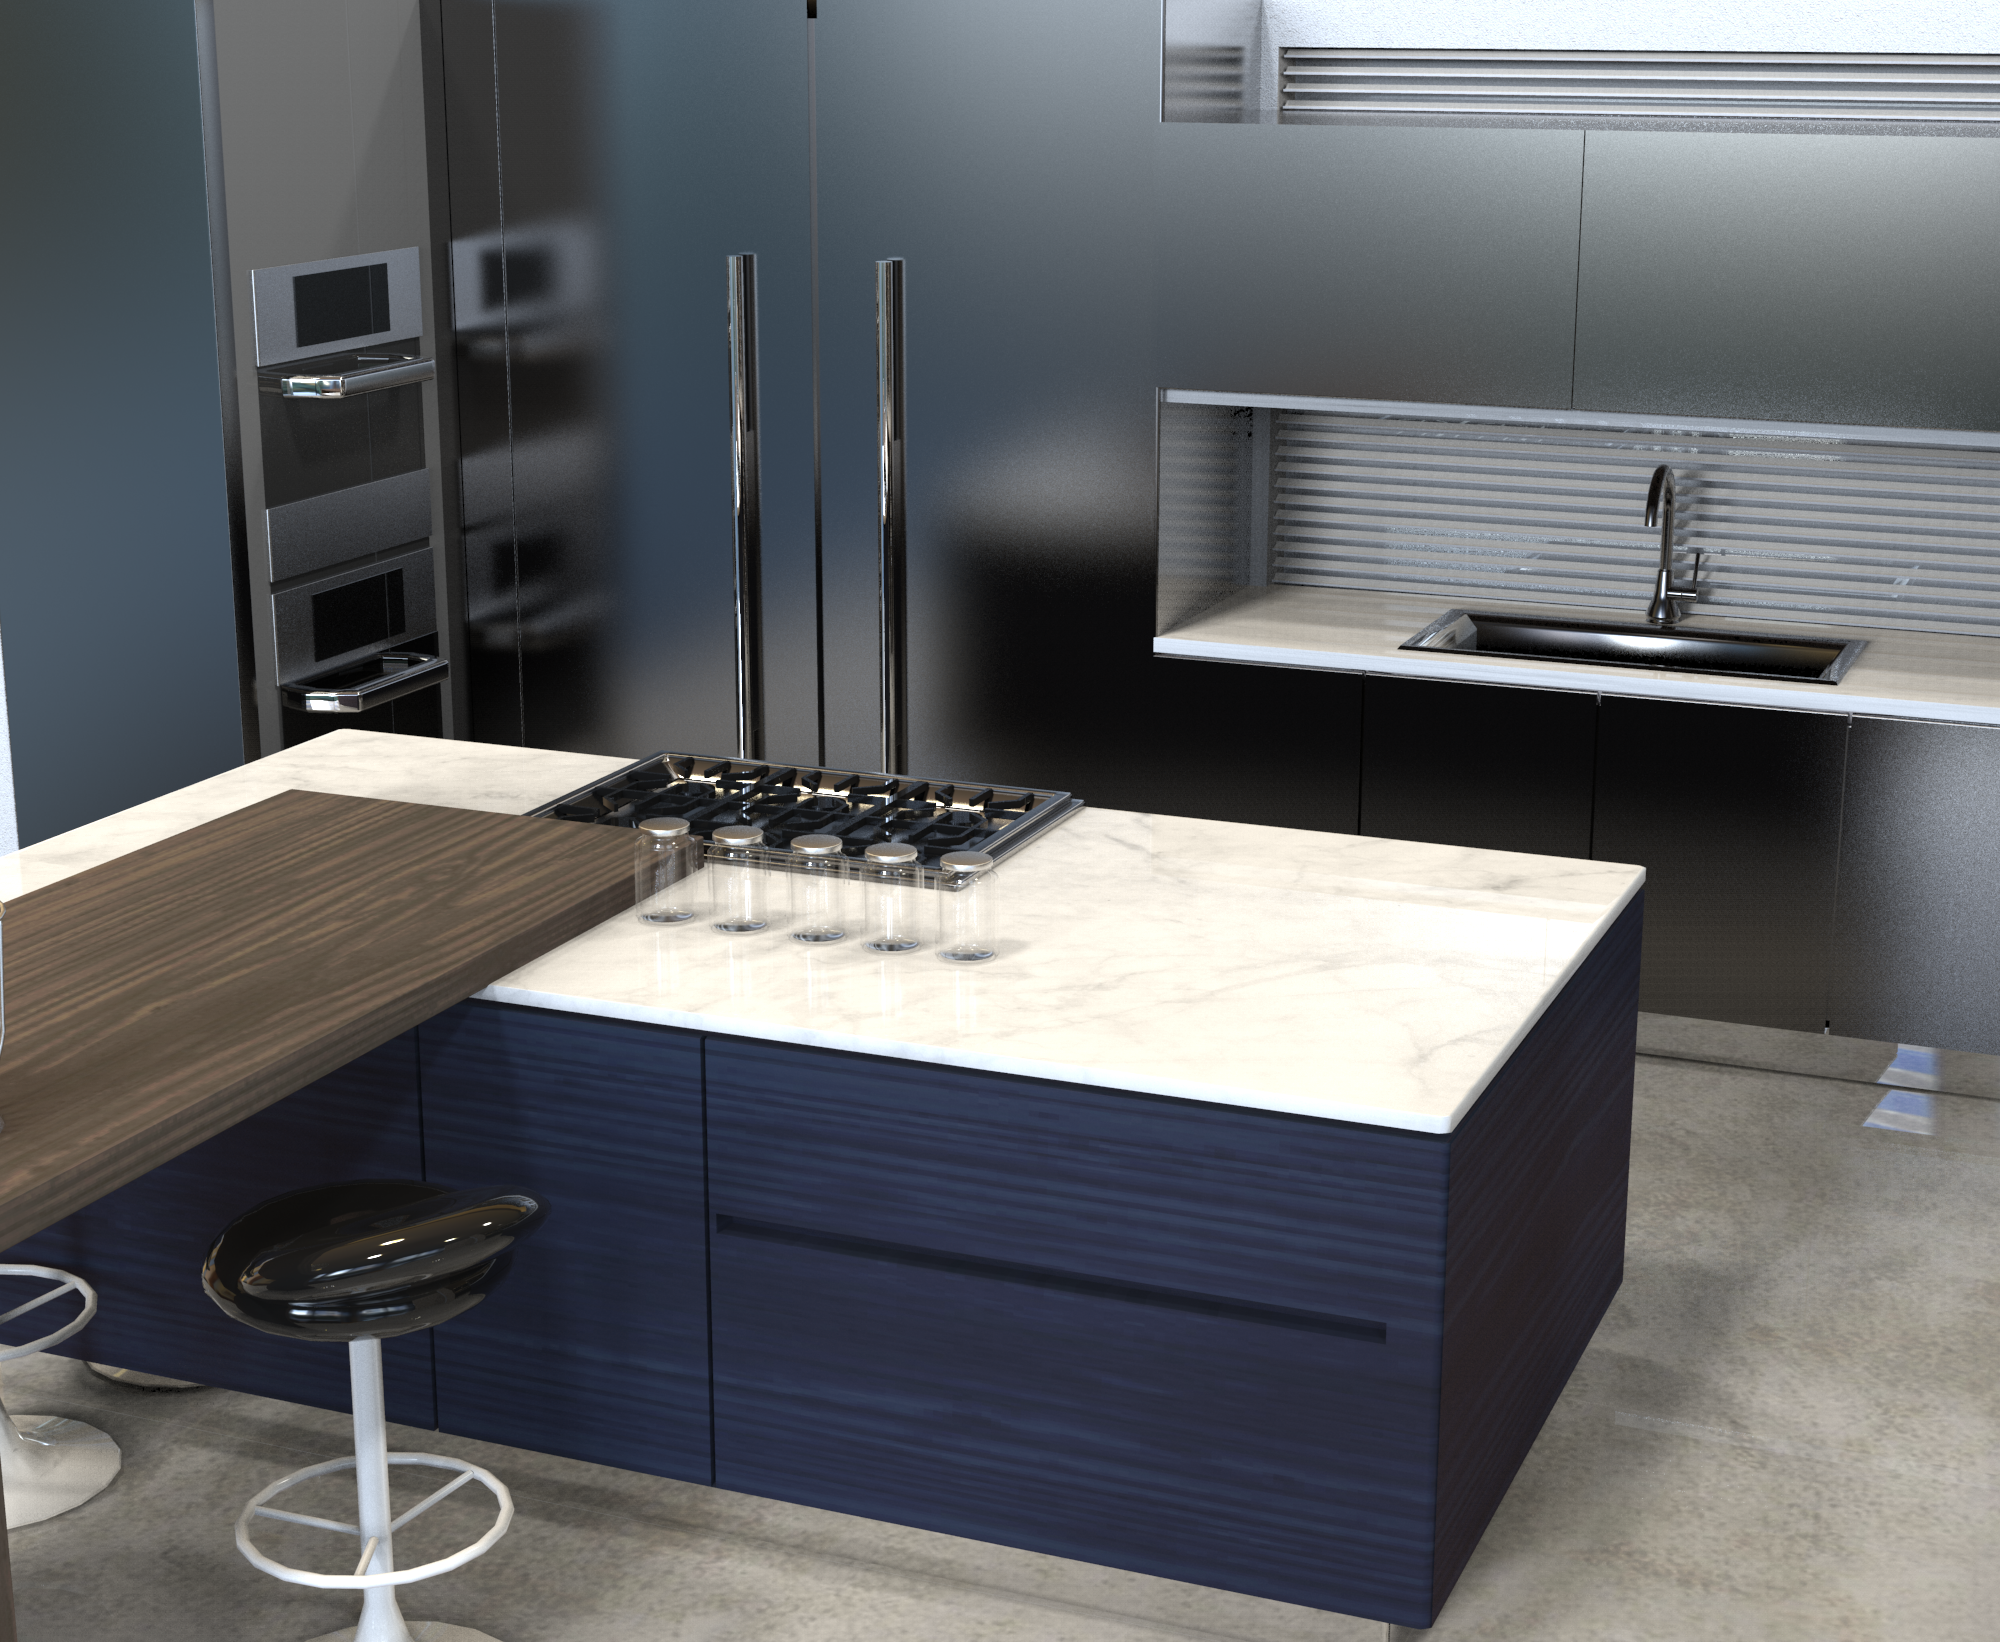 InteriorKitchen.321.png